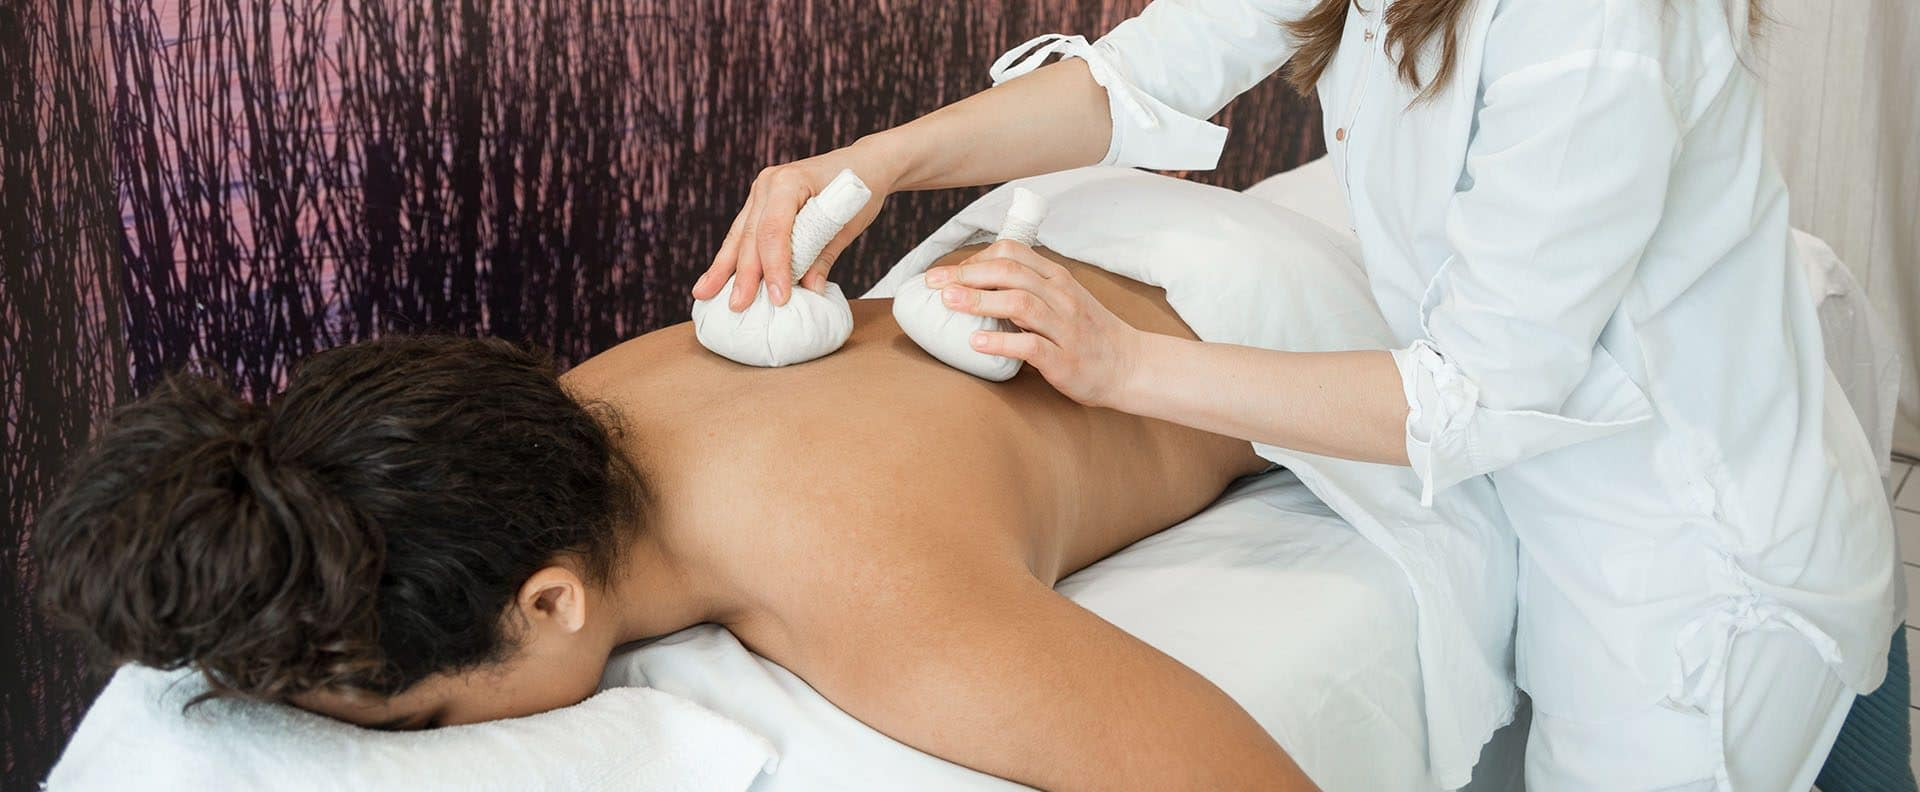 Massage therapie Rotterdam